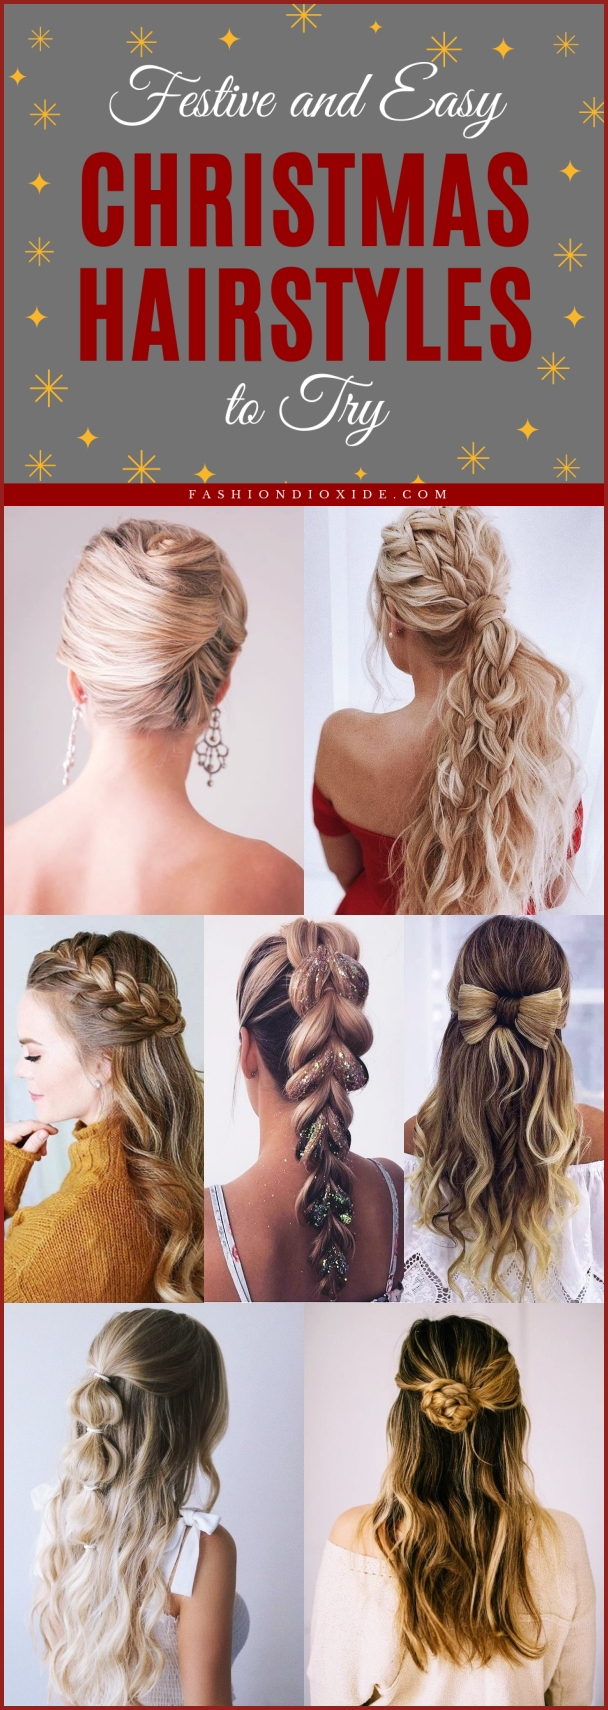 Christmas Hairstyles Easy.31 Festive And Easy Christmas Hairstyles To Try Fashiondioxide